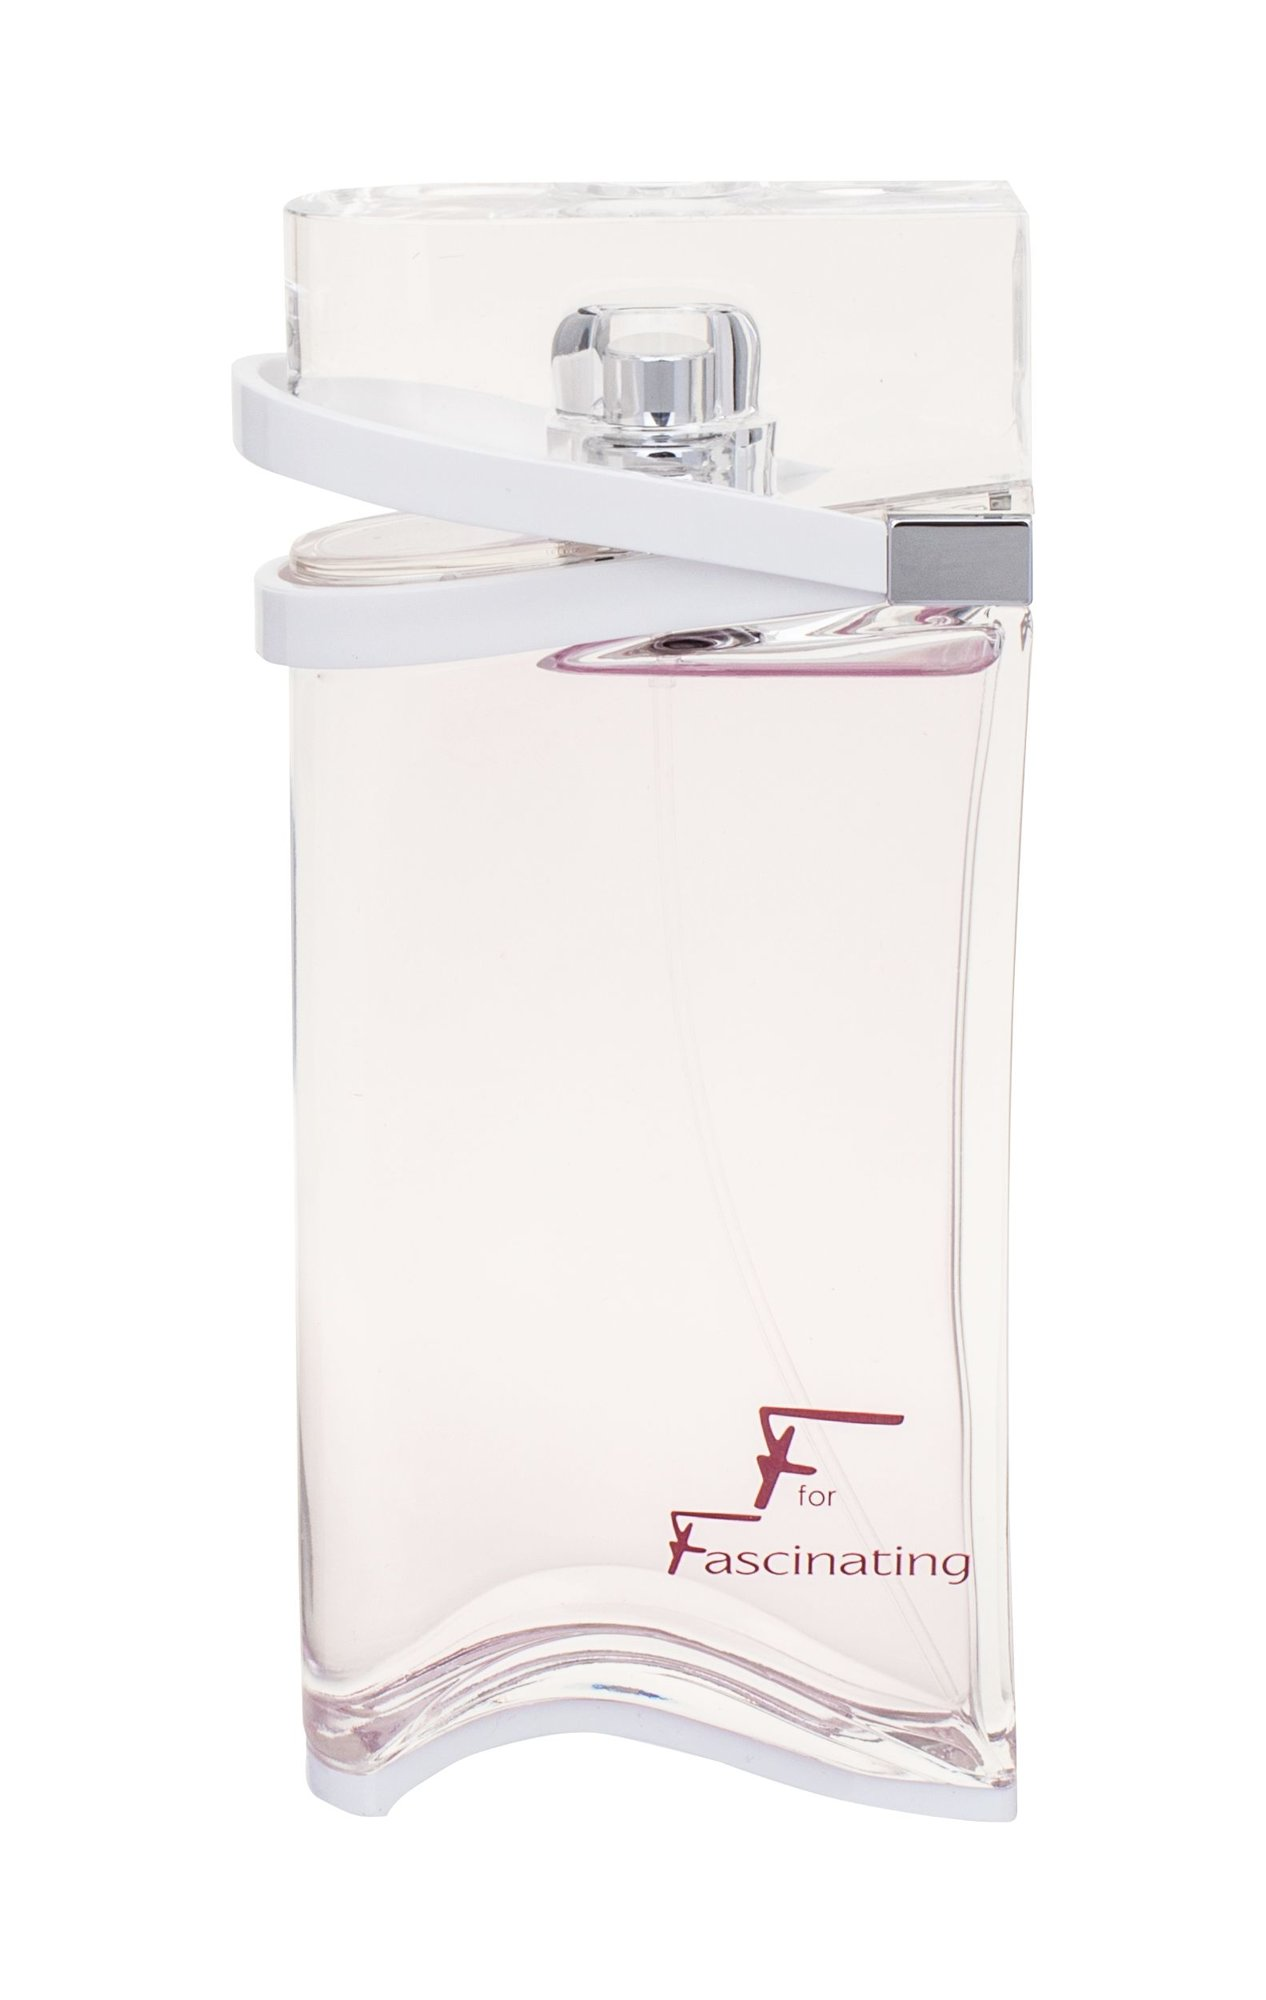 Salvatore Ferragamo F for Fascinating Eau de Toilette 90ml